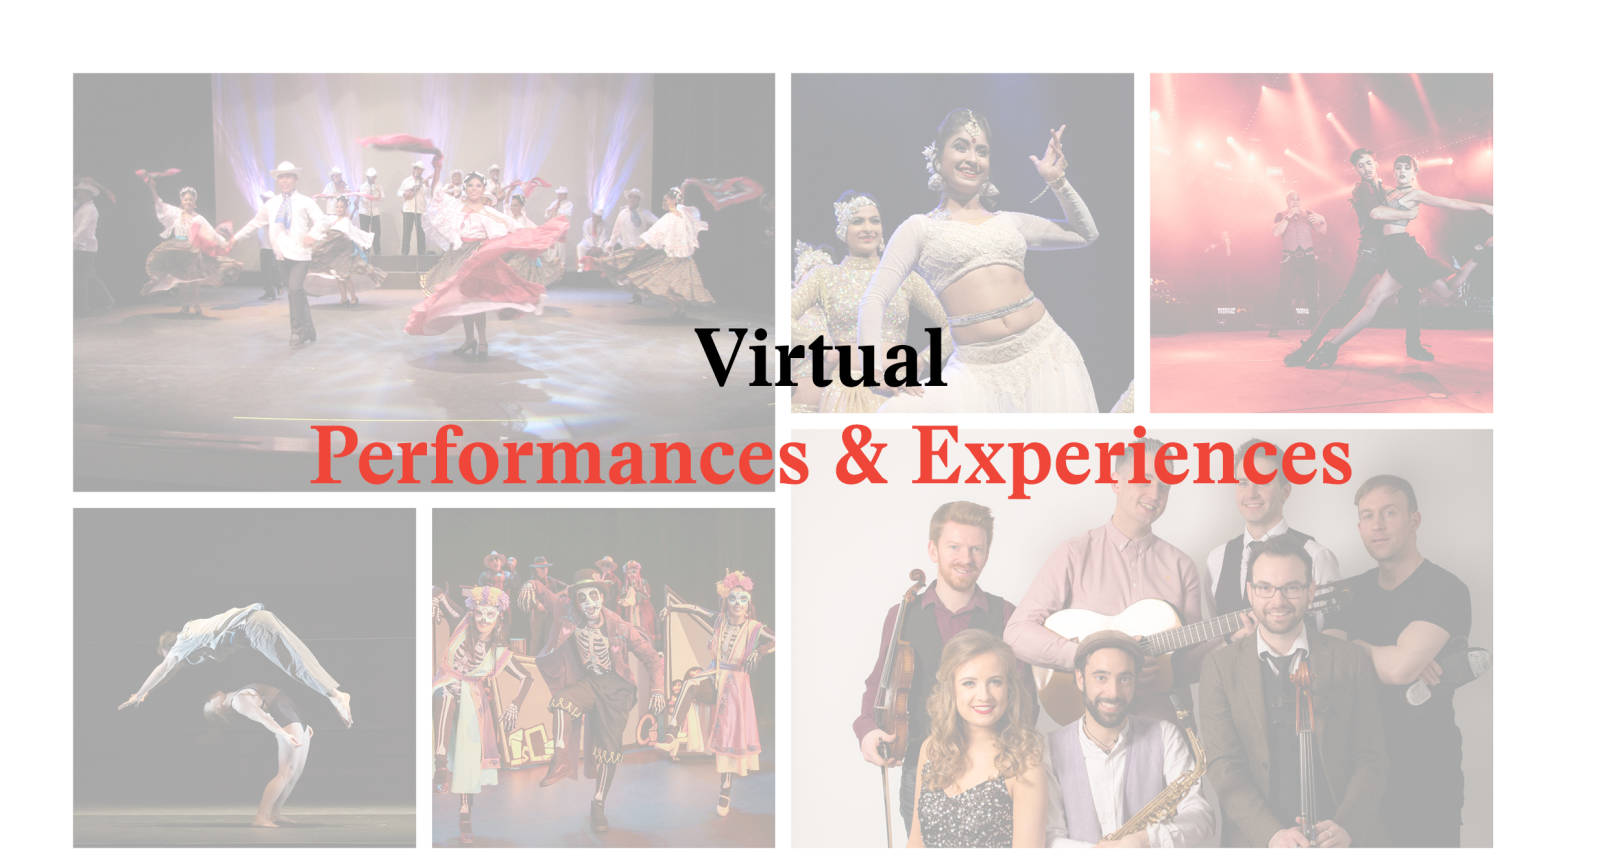 Virtual Performances & Experiences  - Virtual Roster